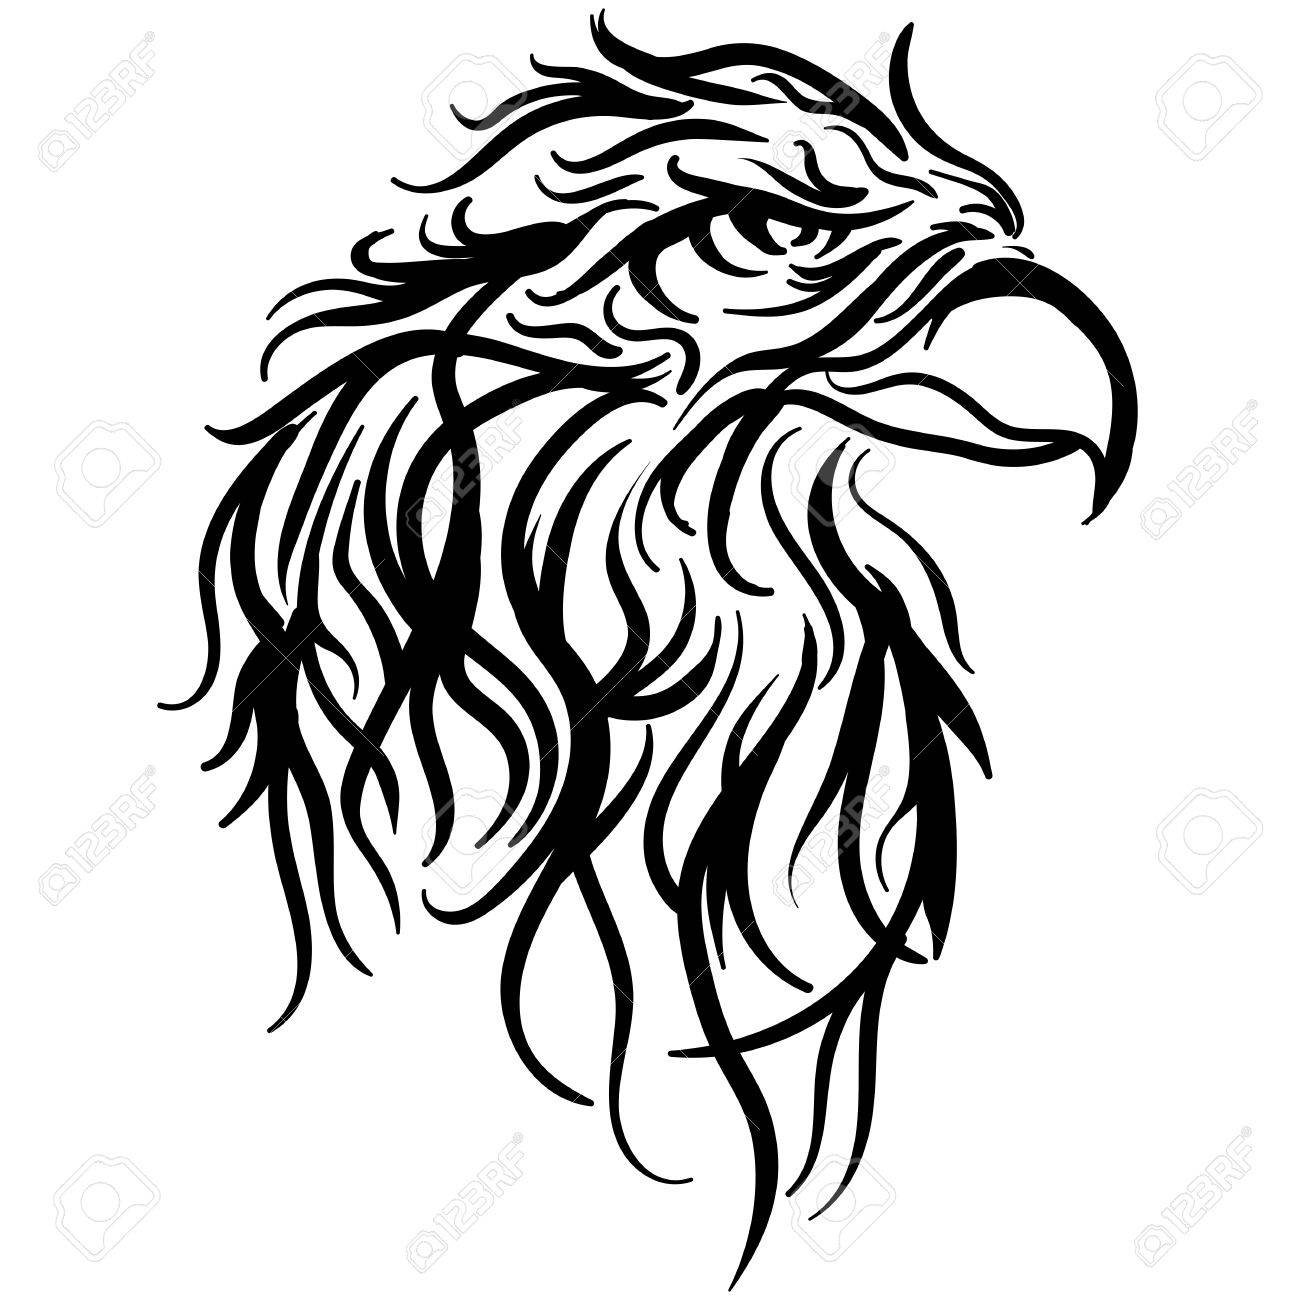 1300x1300 The Stylized Image Of A Eagle Head. Vector Stylized Face Of Ink